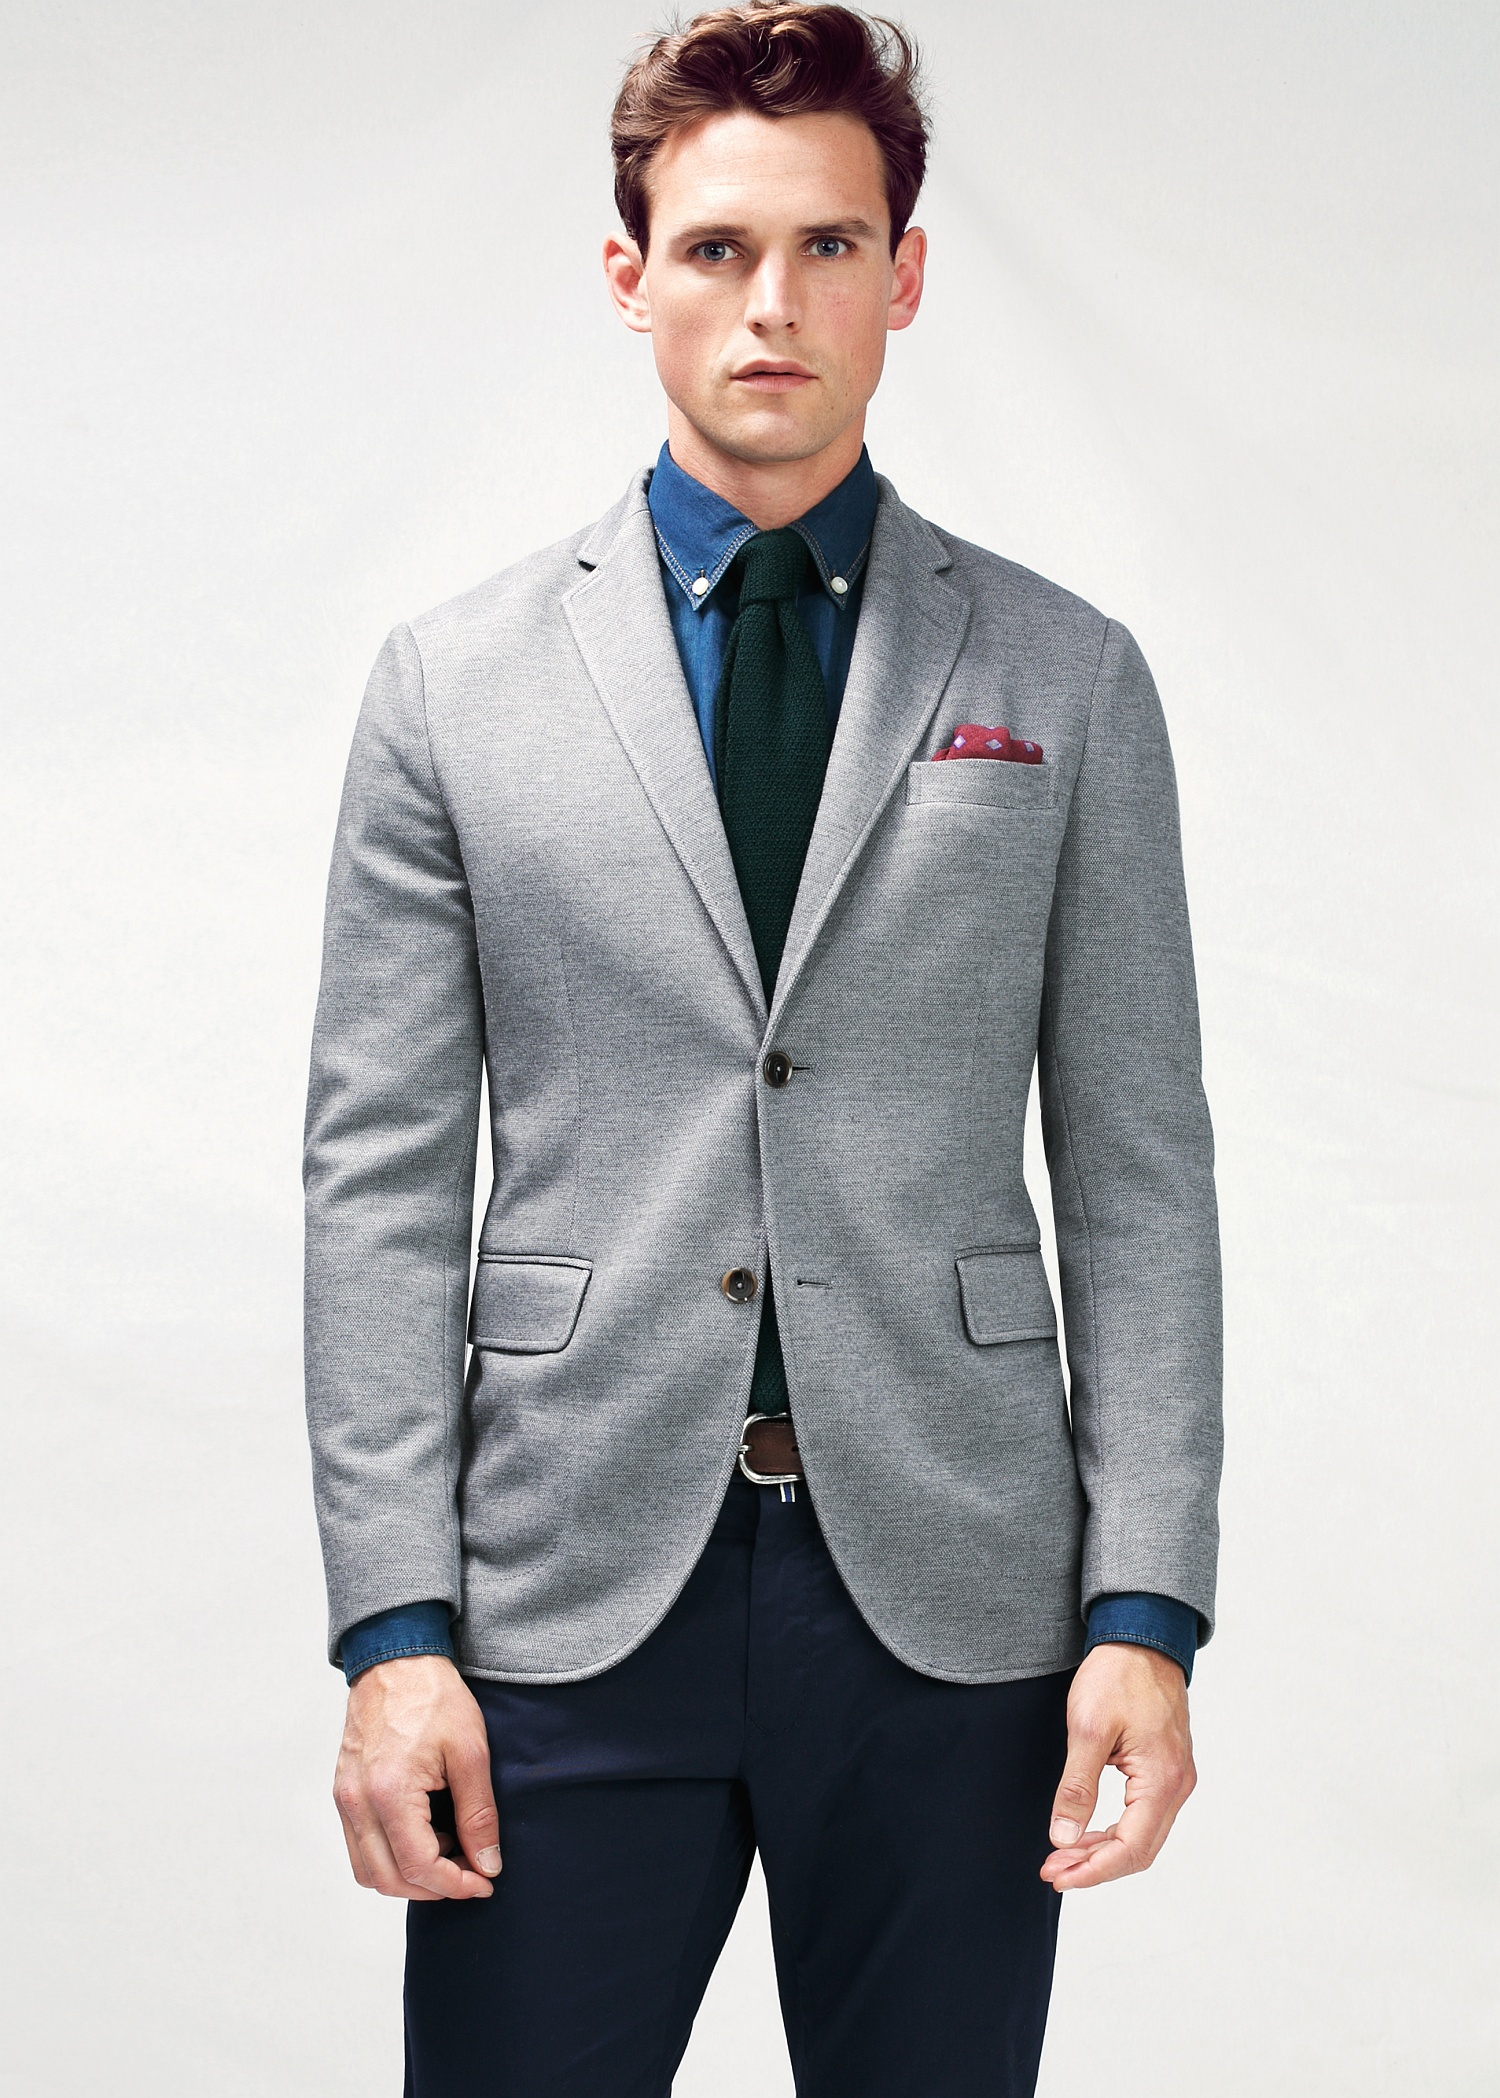 A grey blazer is an essential menswear item that every gent should own. Whether you're dressing for the office, a formal function, cocktail drinks or even a casual dinner, a grey blazer makes an excellent option. Far more versatile than traditional black, a grey blazer can be worn with many looks.